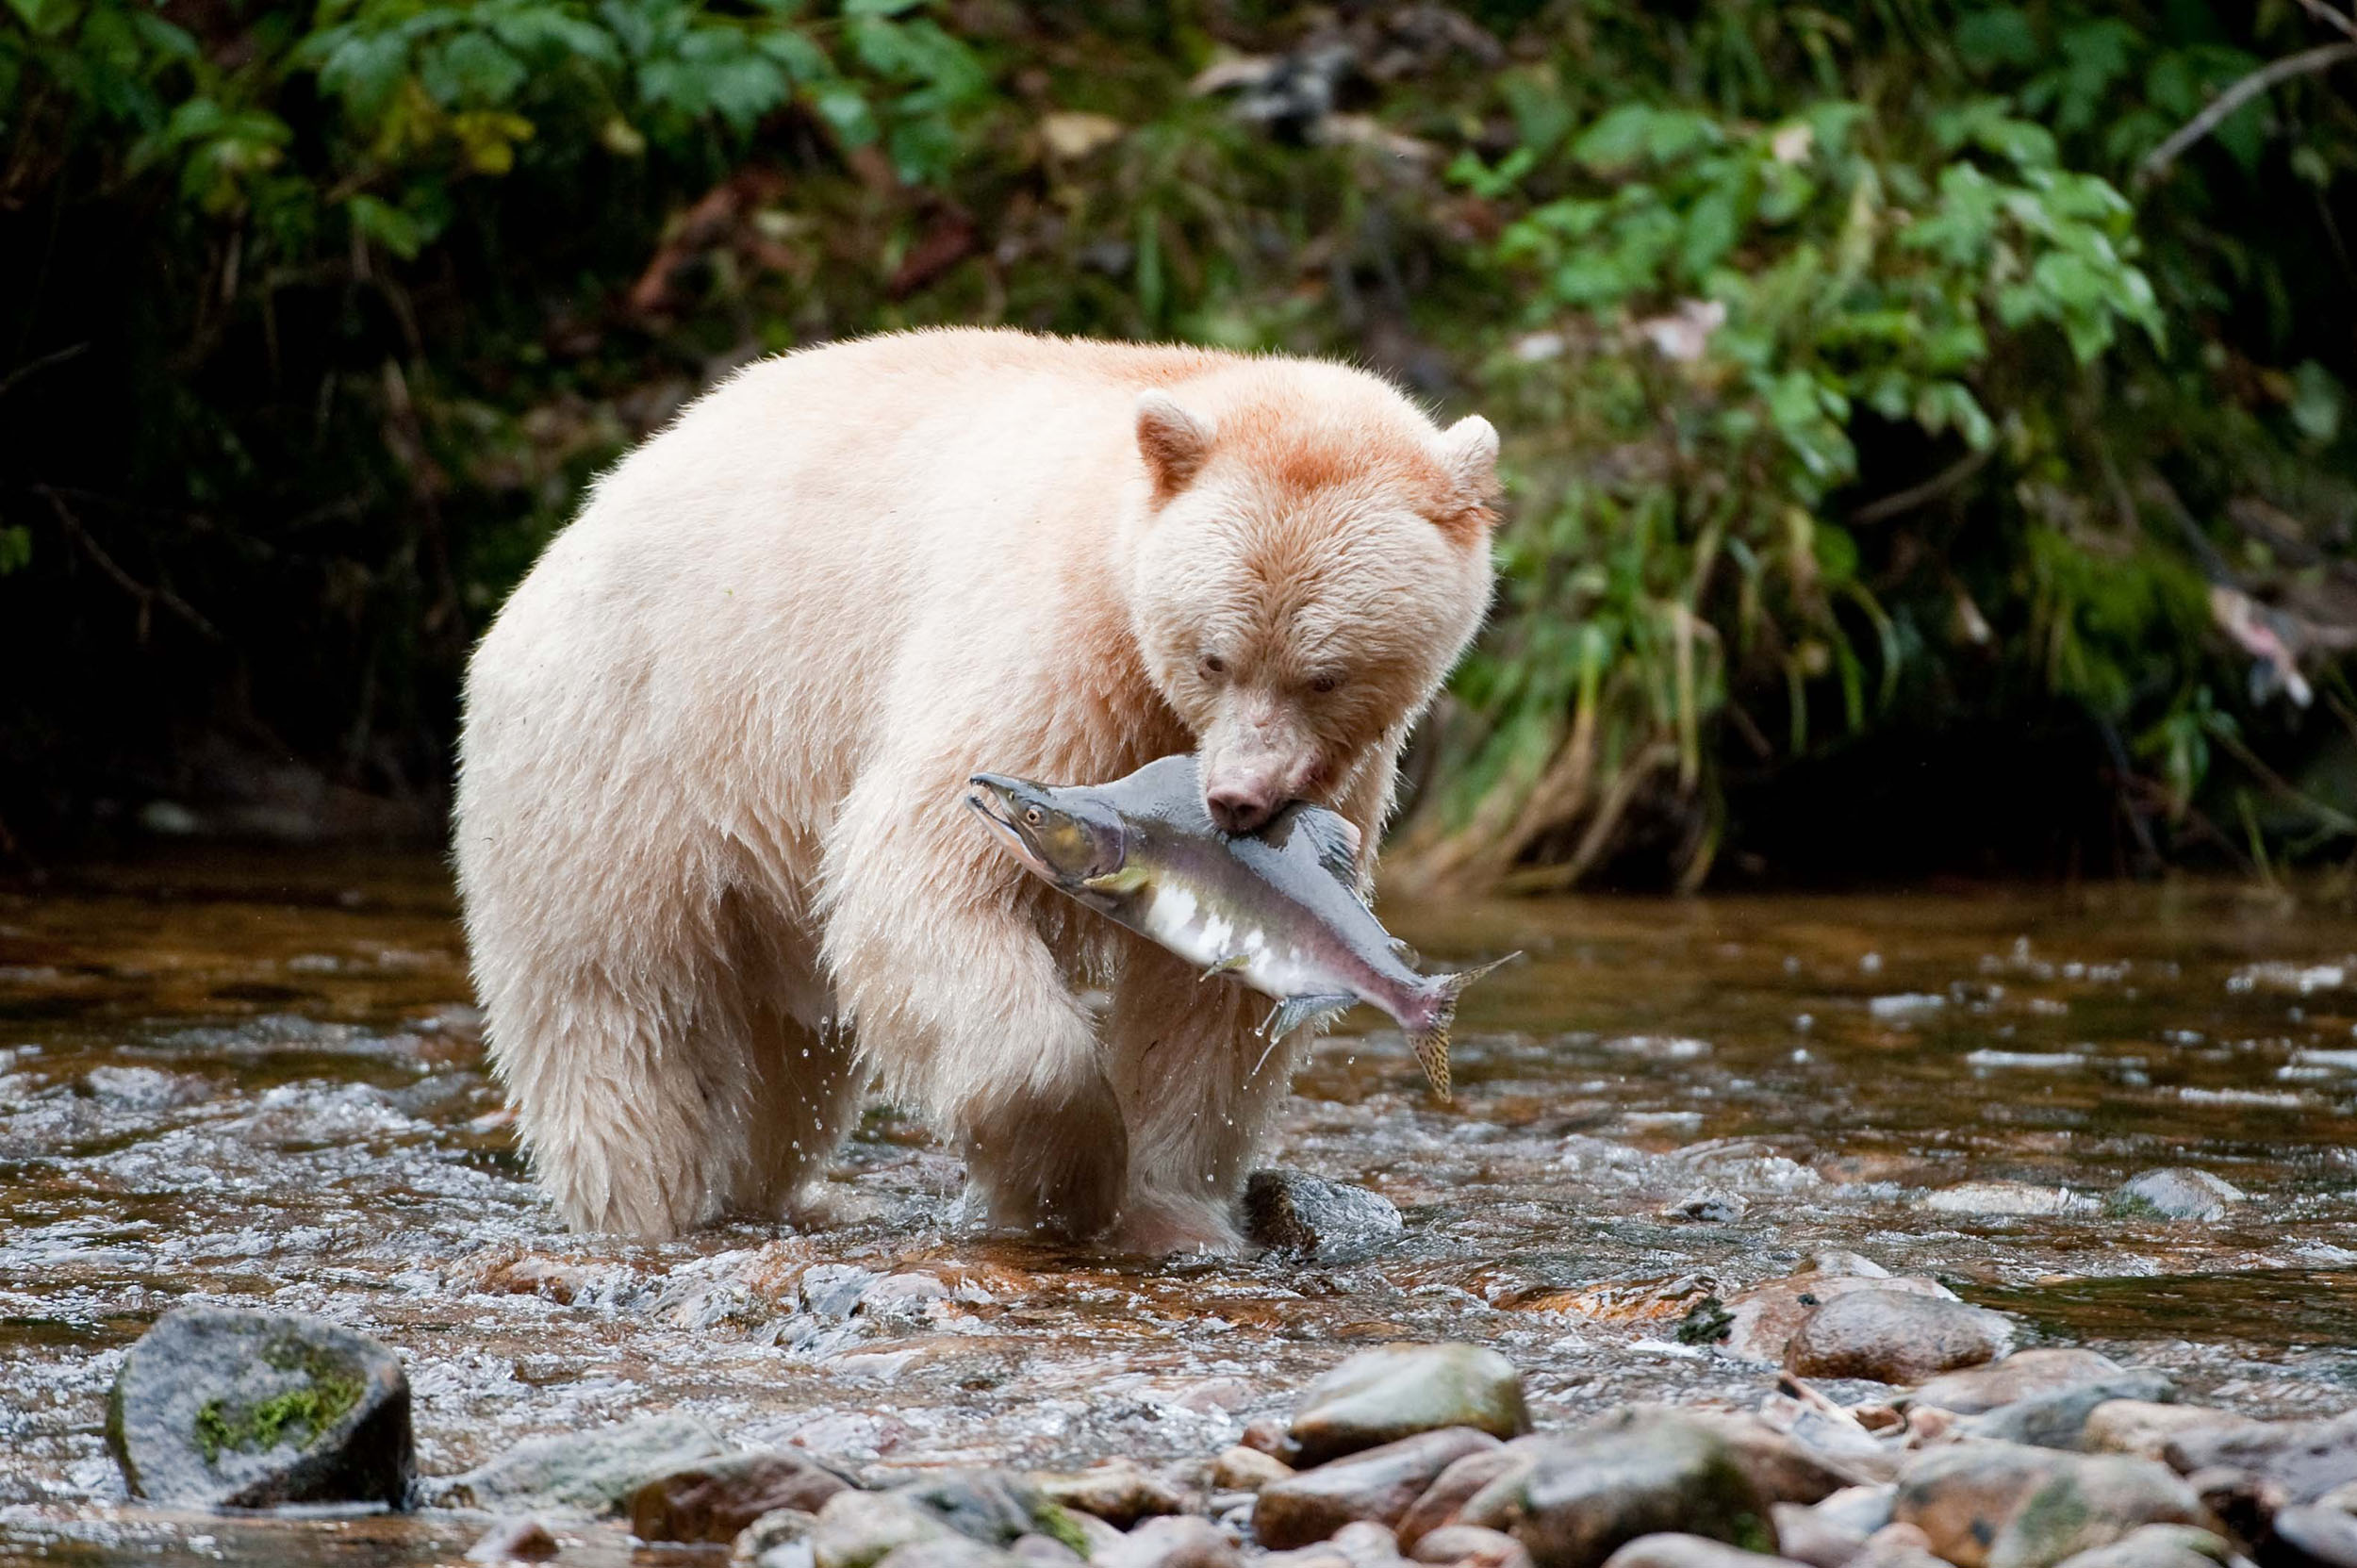 A large white bear stands in a shallow river with a large fish in its mouth.